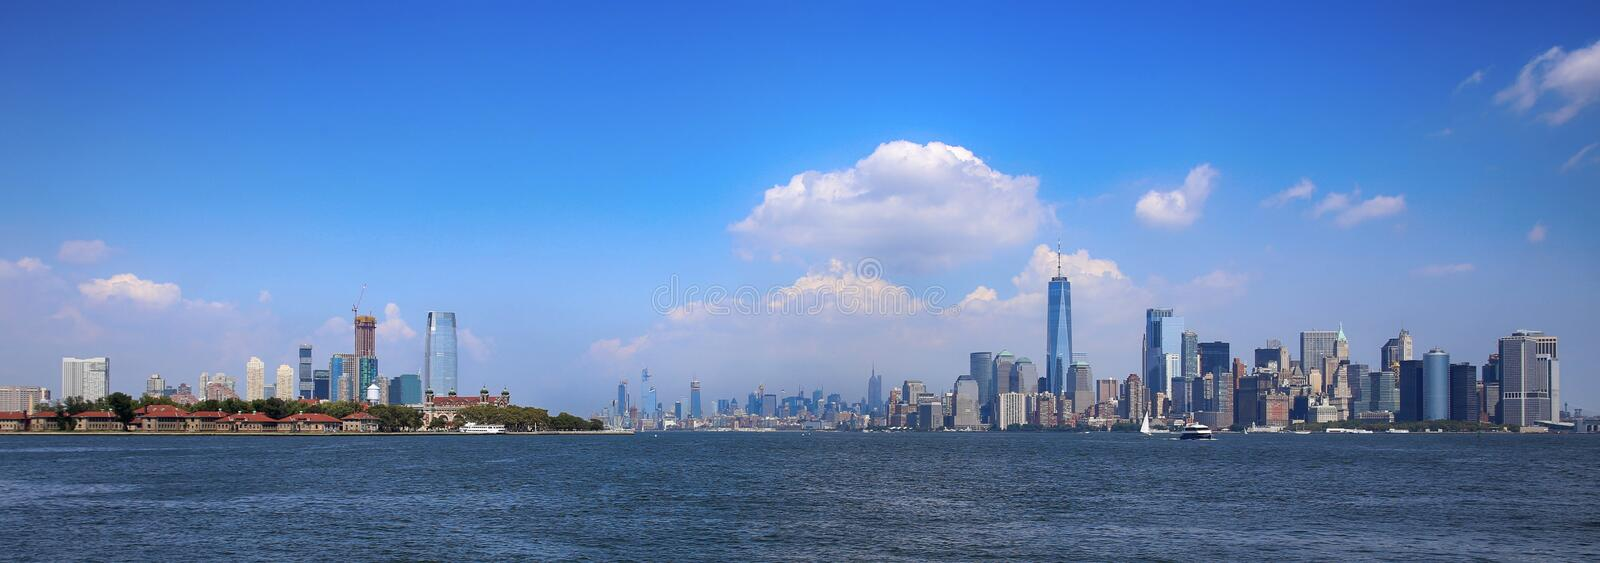 New-Jersey und New York City stockbilder